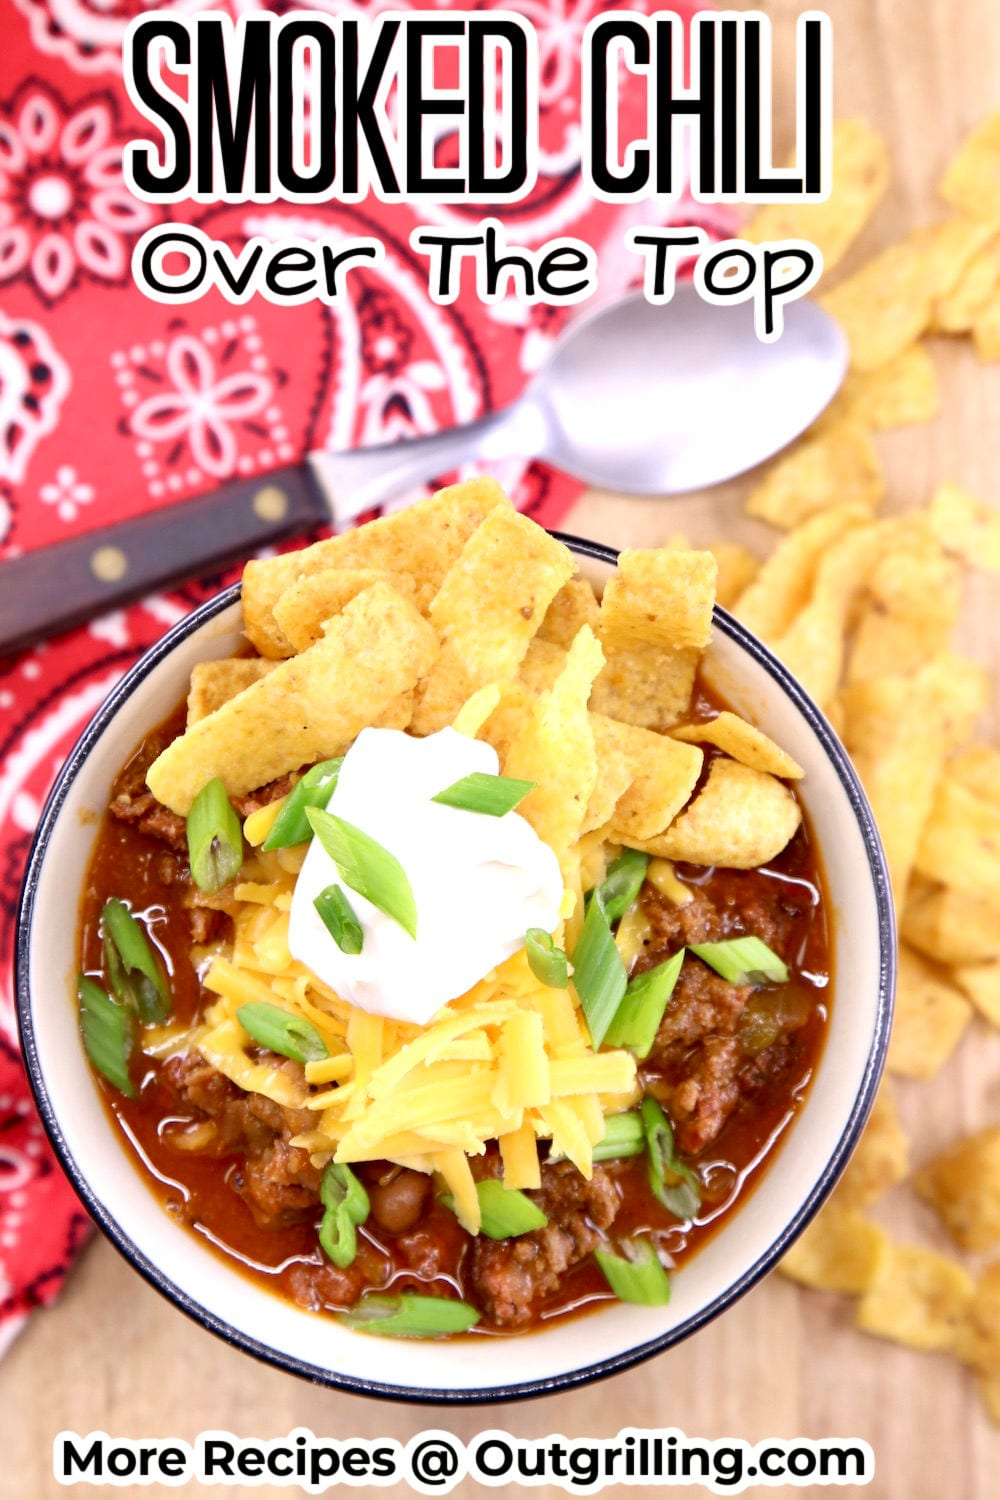 Bowl of chili topped with cheese, sour cream, green onions and Fritos, spoon and bandana napkin to the side